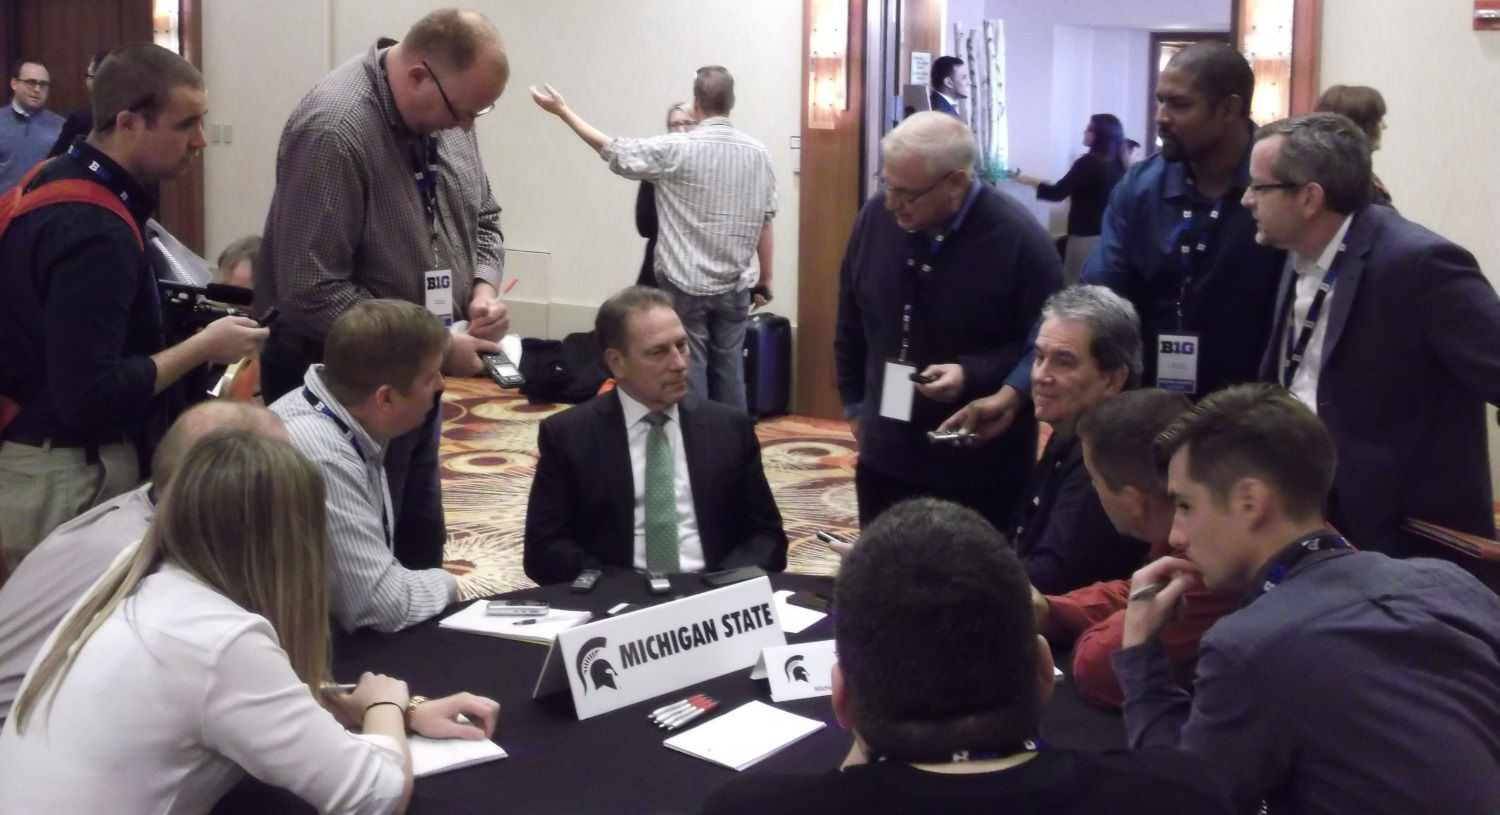 Tom Izzo B1G Media Day